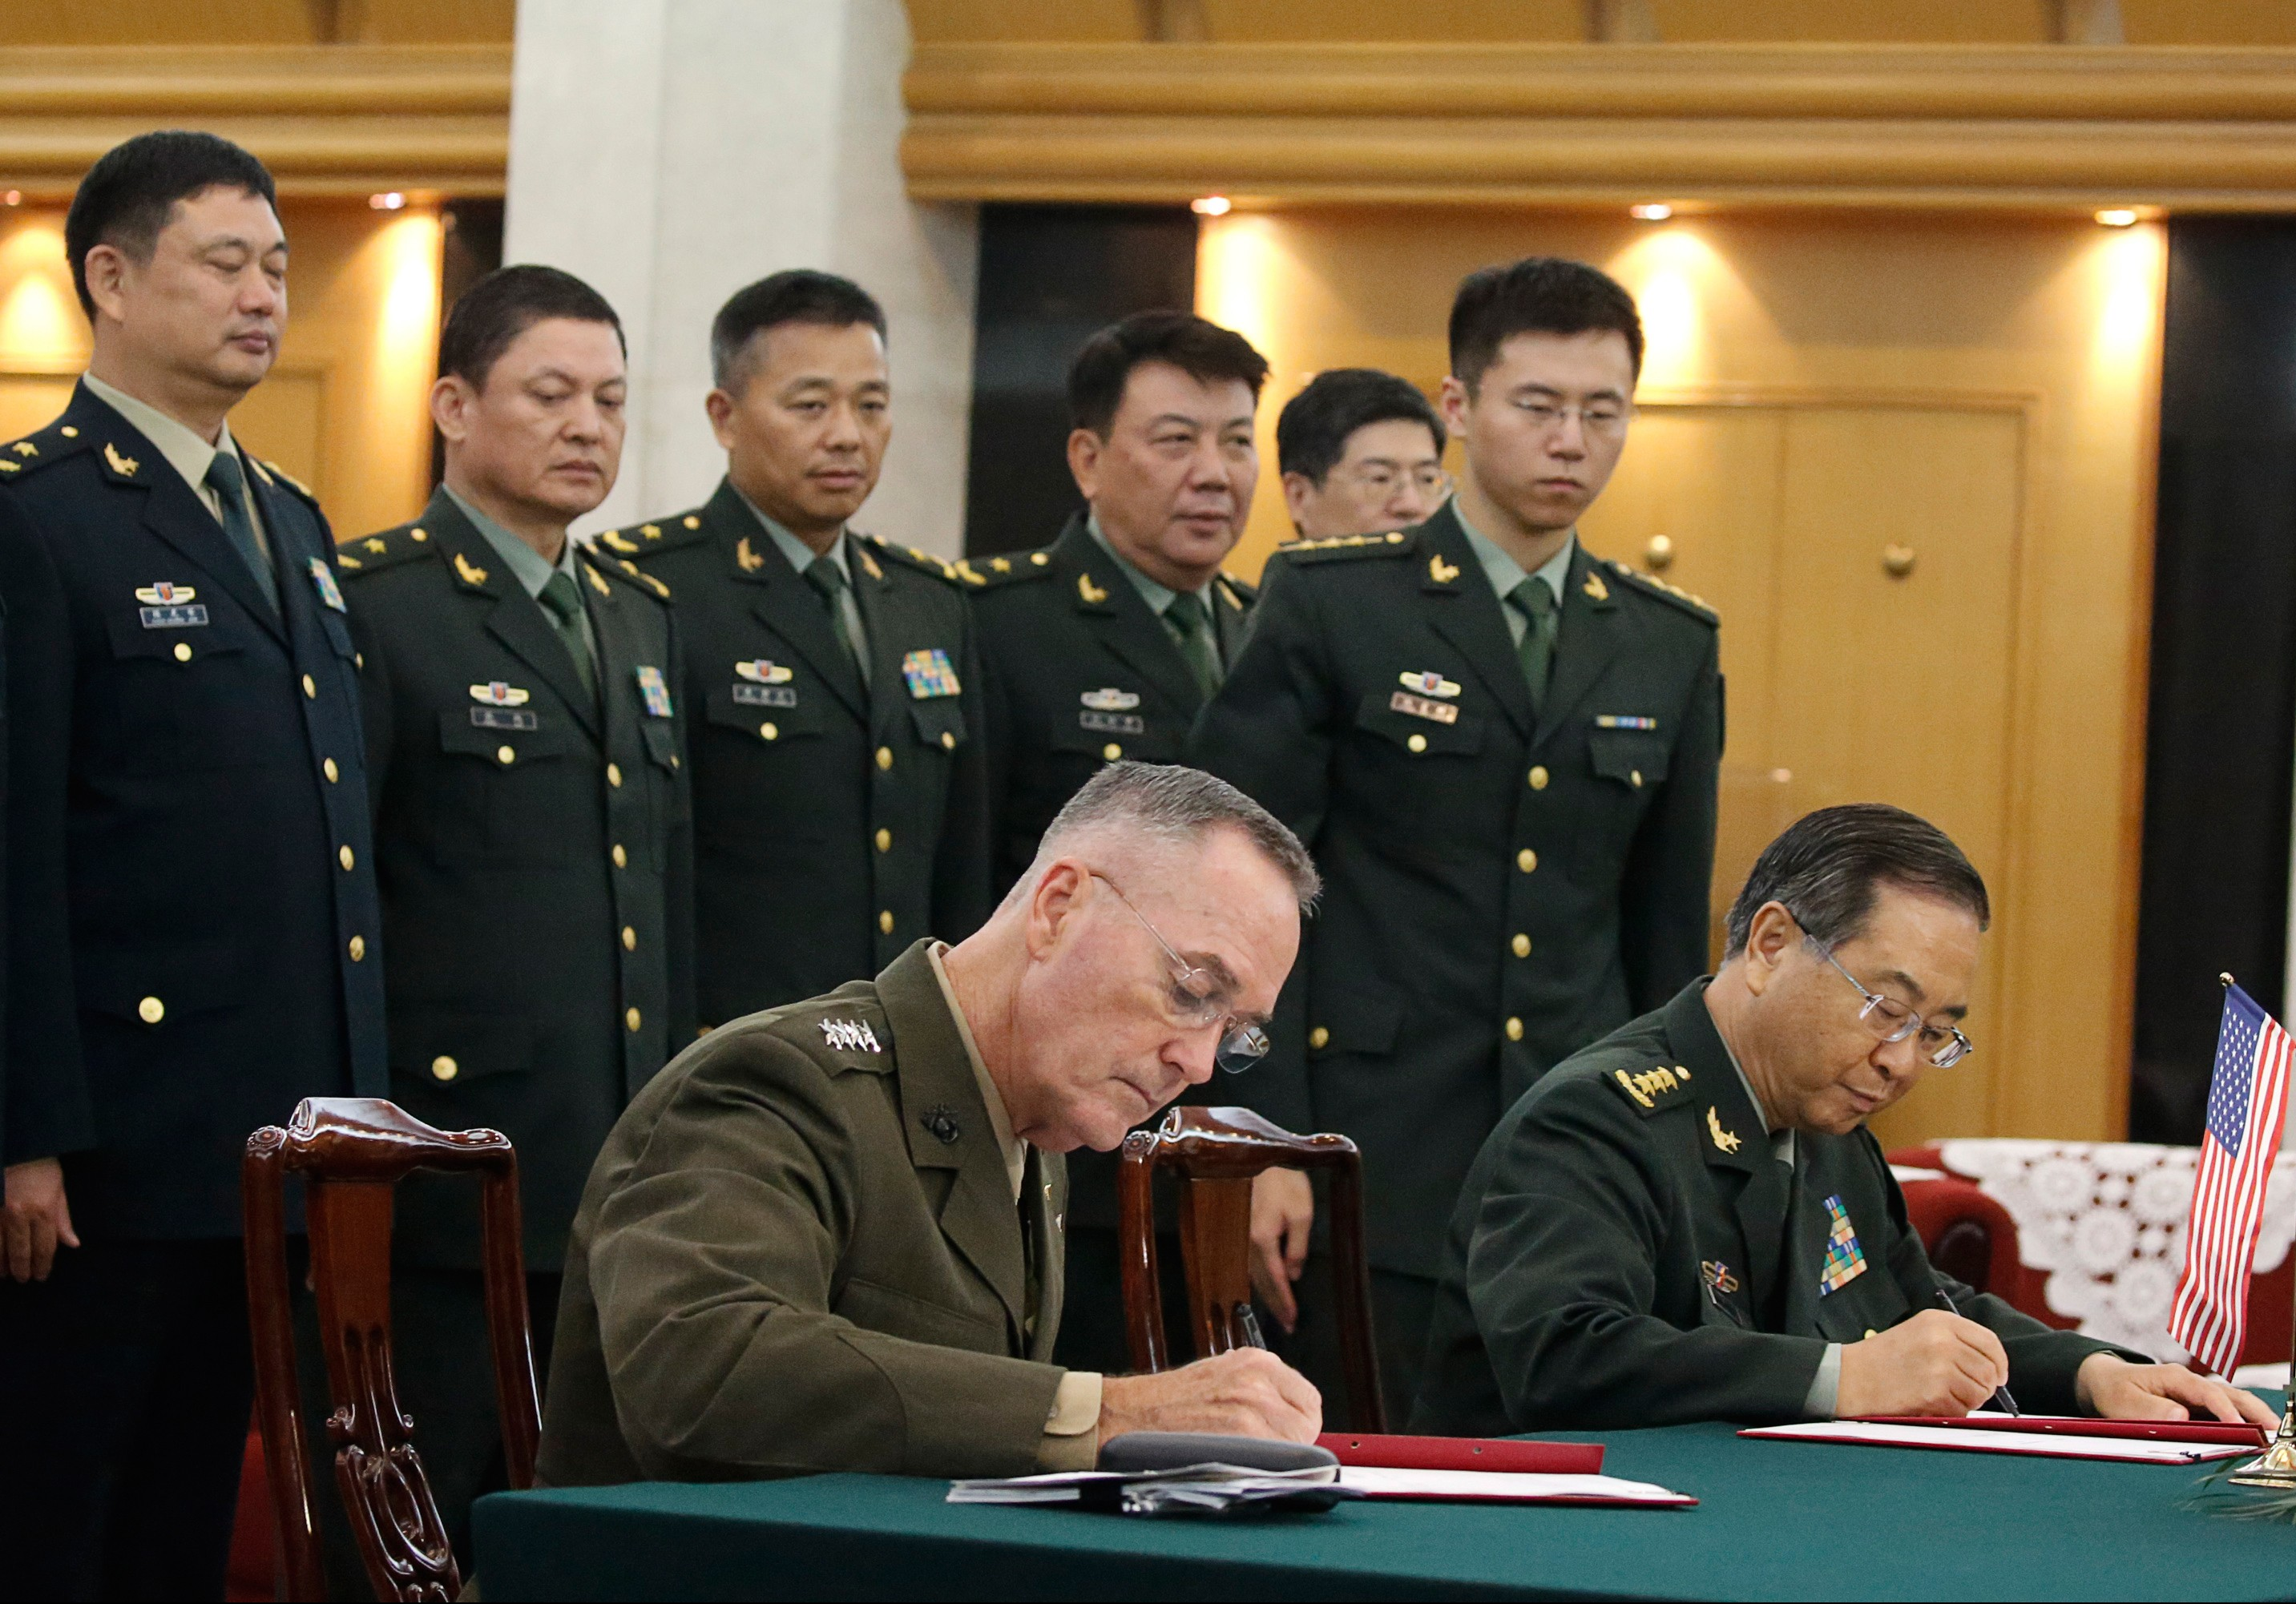 General Joseph Dunford (front L), chairman of the US Joint Chiefs of Staff, and his Chinese counterpart General Fang Fenghui, chief of the general staff of the Chinese People's Liberation Army, attend a signing ceremony in Beijing on Aug. 15, 2017. (THOMAS PETER/AFP/Getty Images)